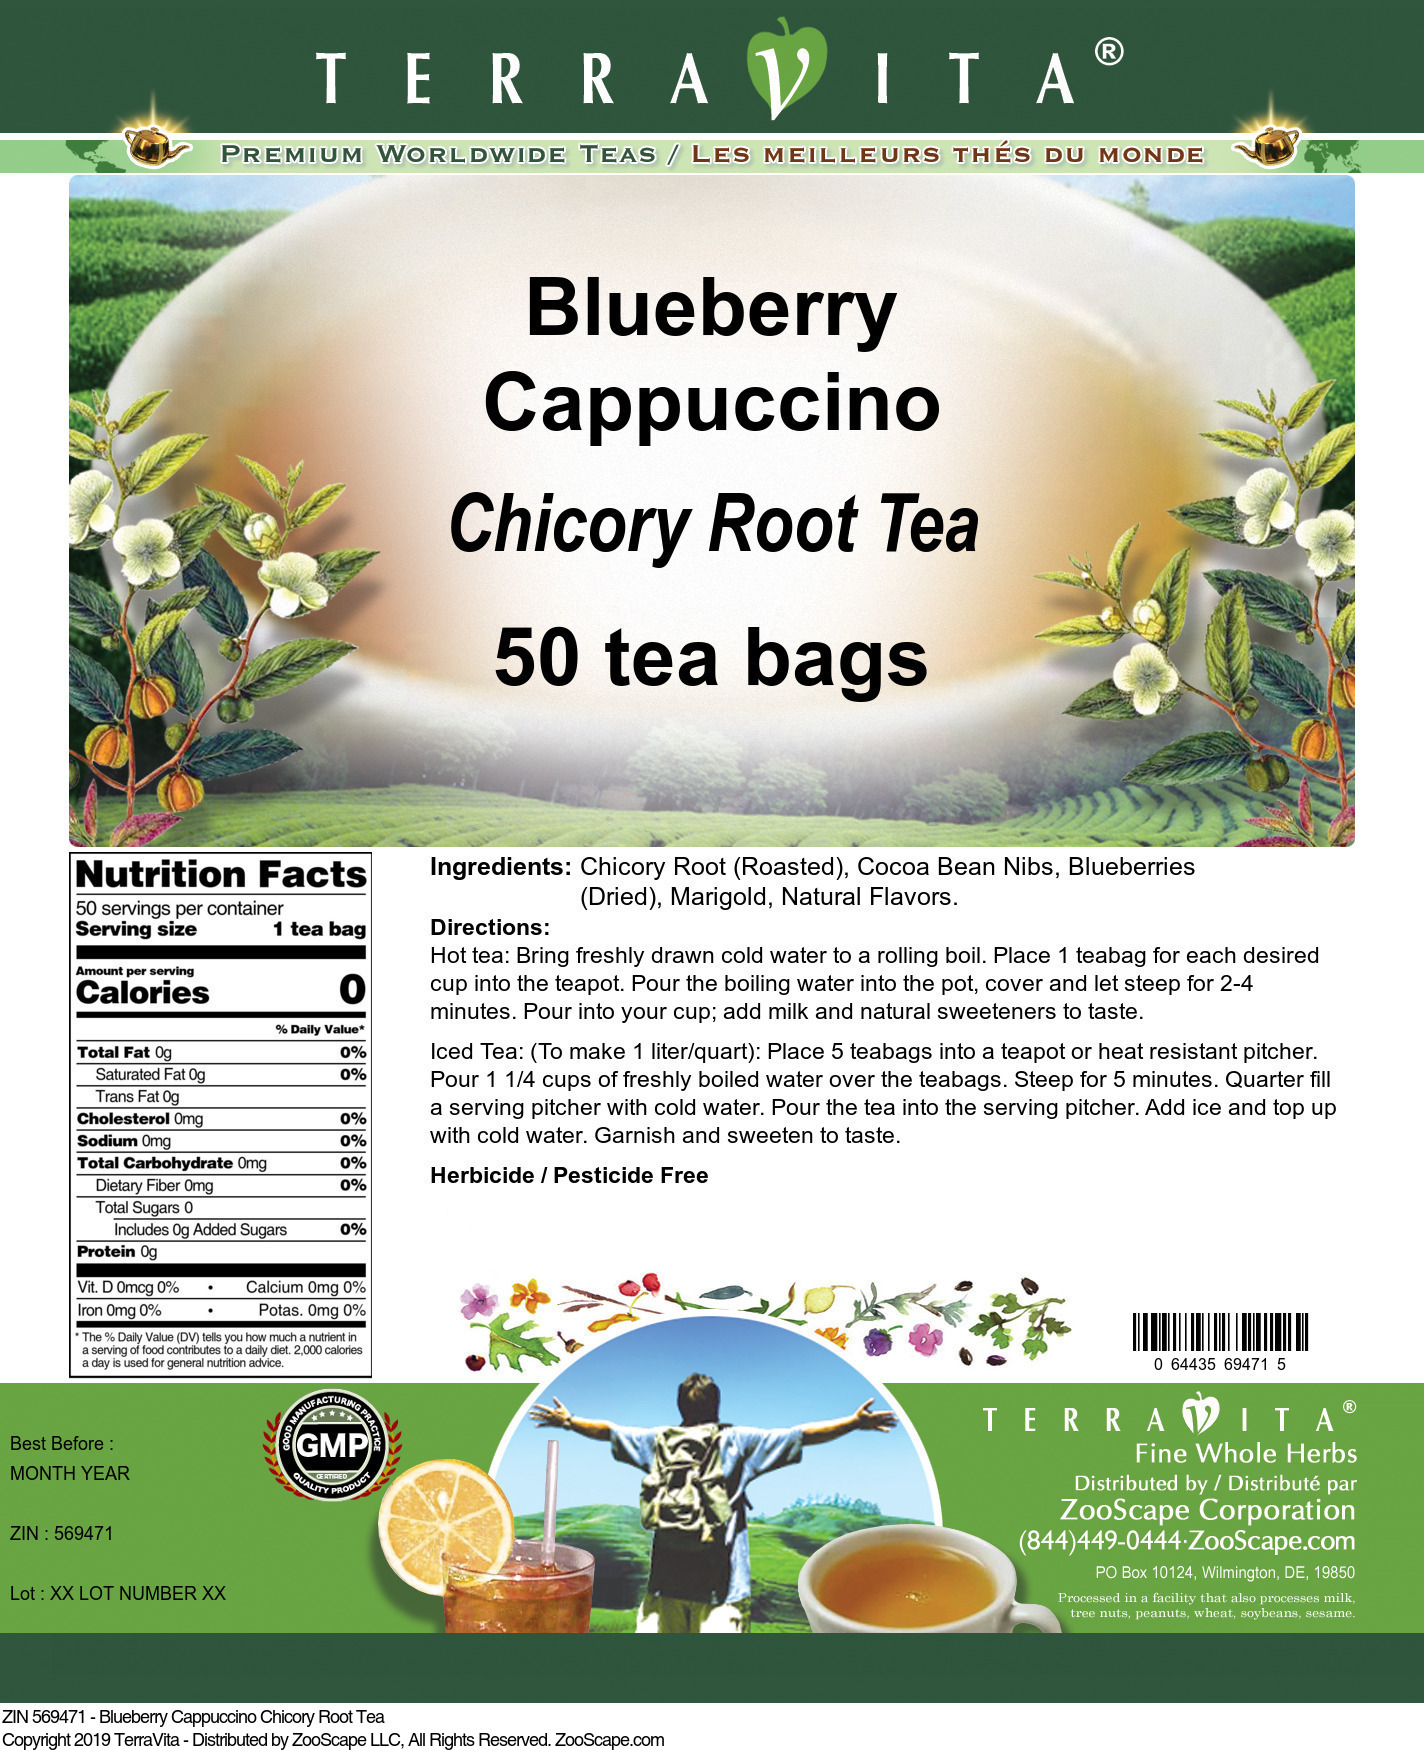 Blueberry Cappuccino Chicory Root Tea